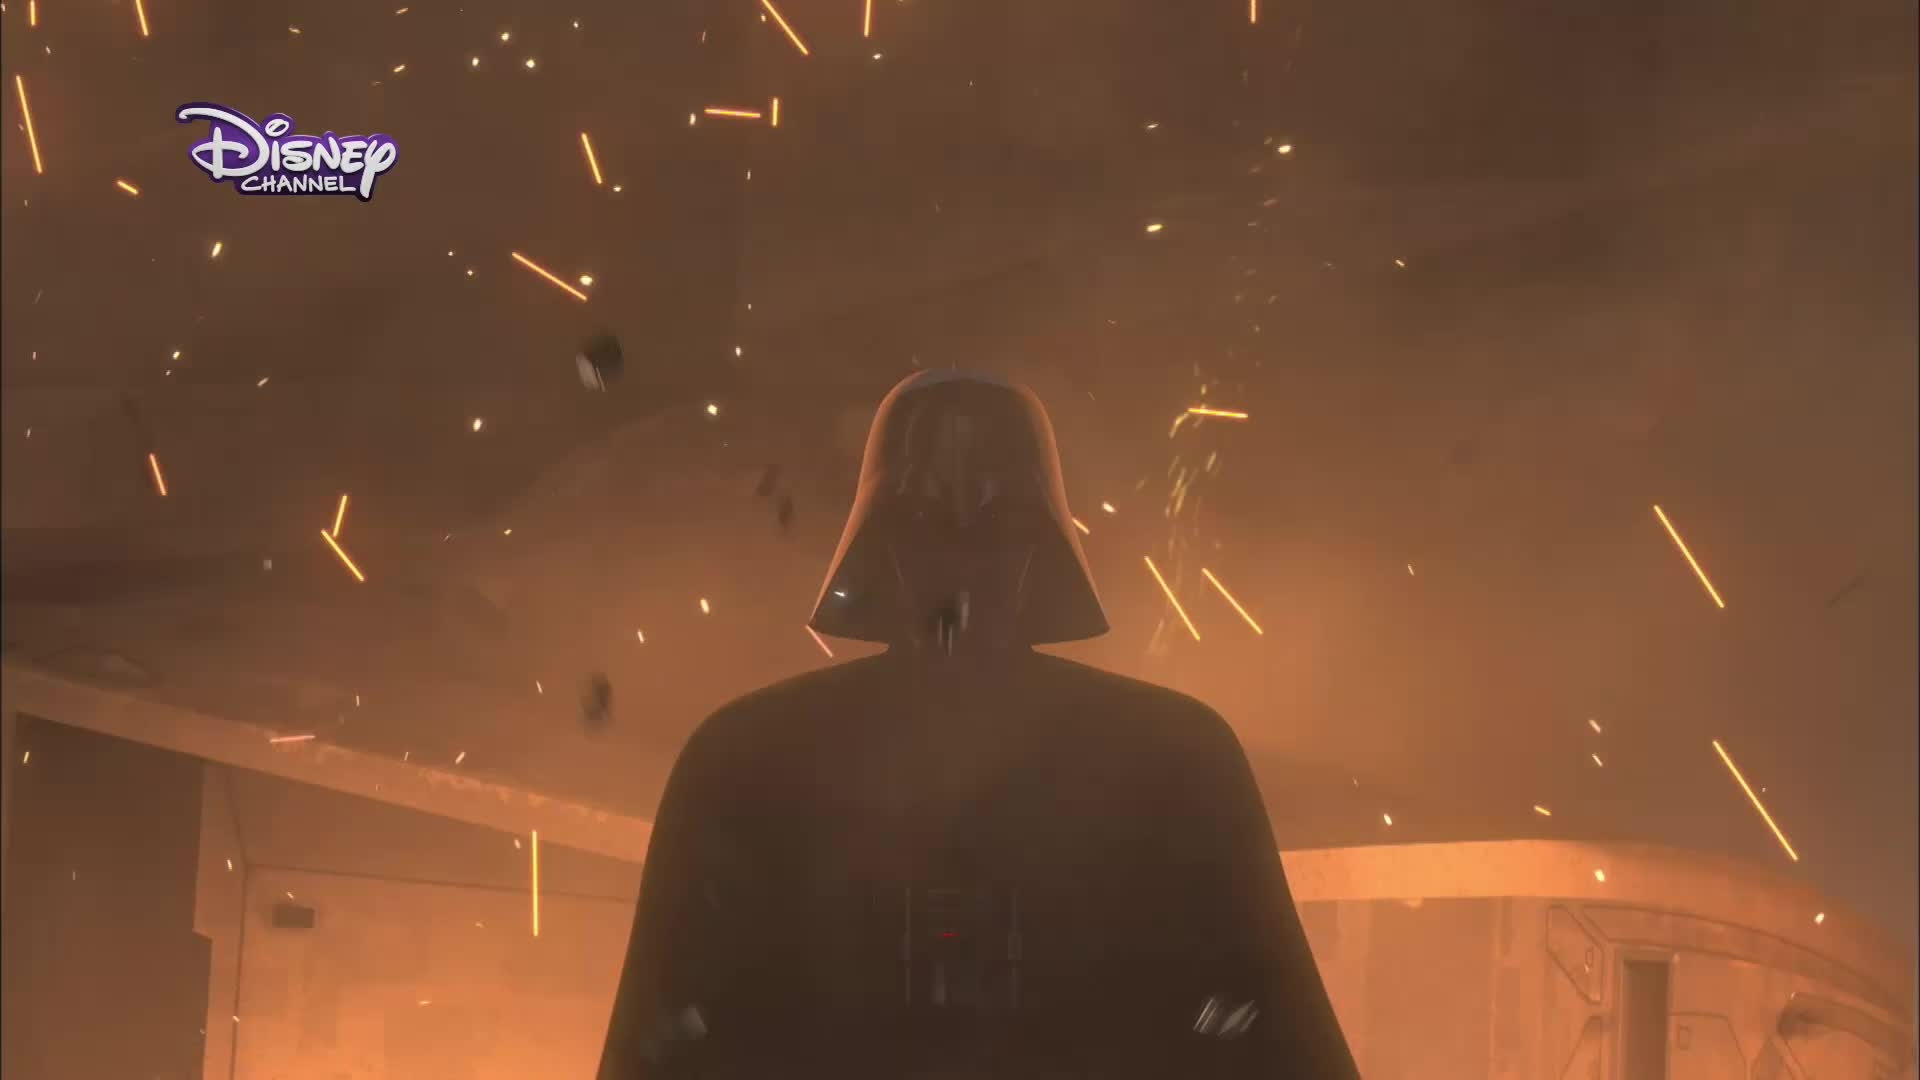 Star Wars Rebels - Darth Vader